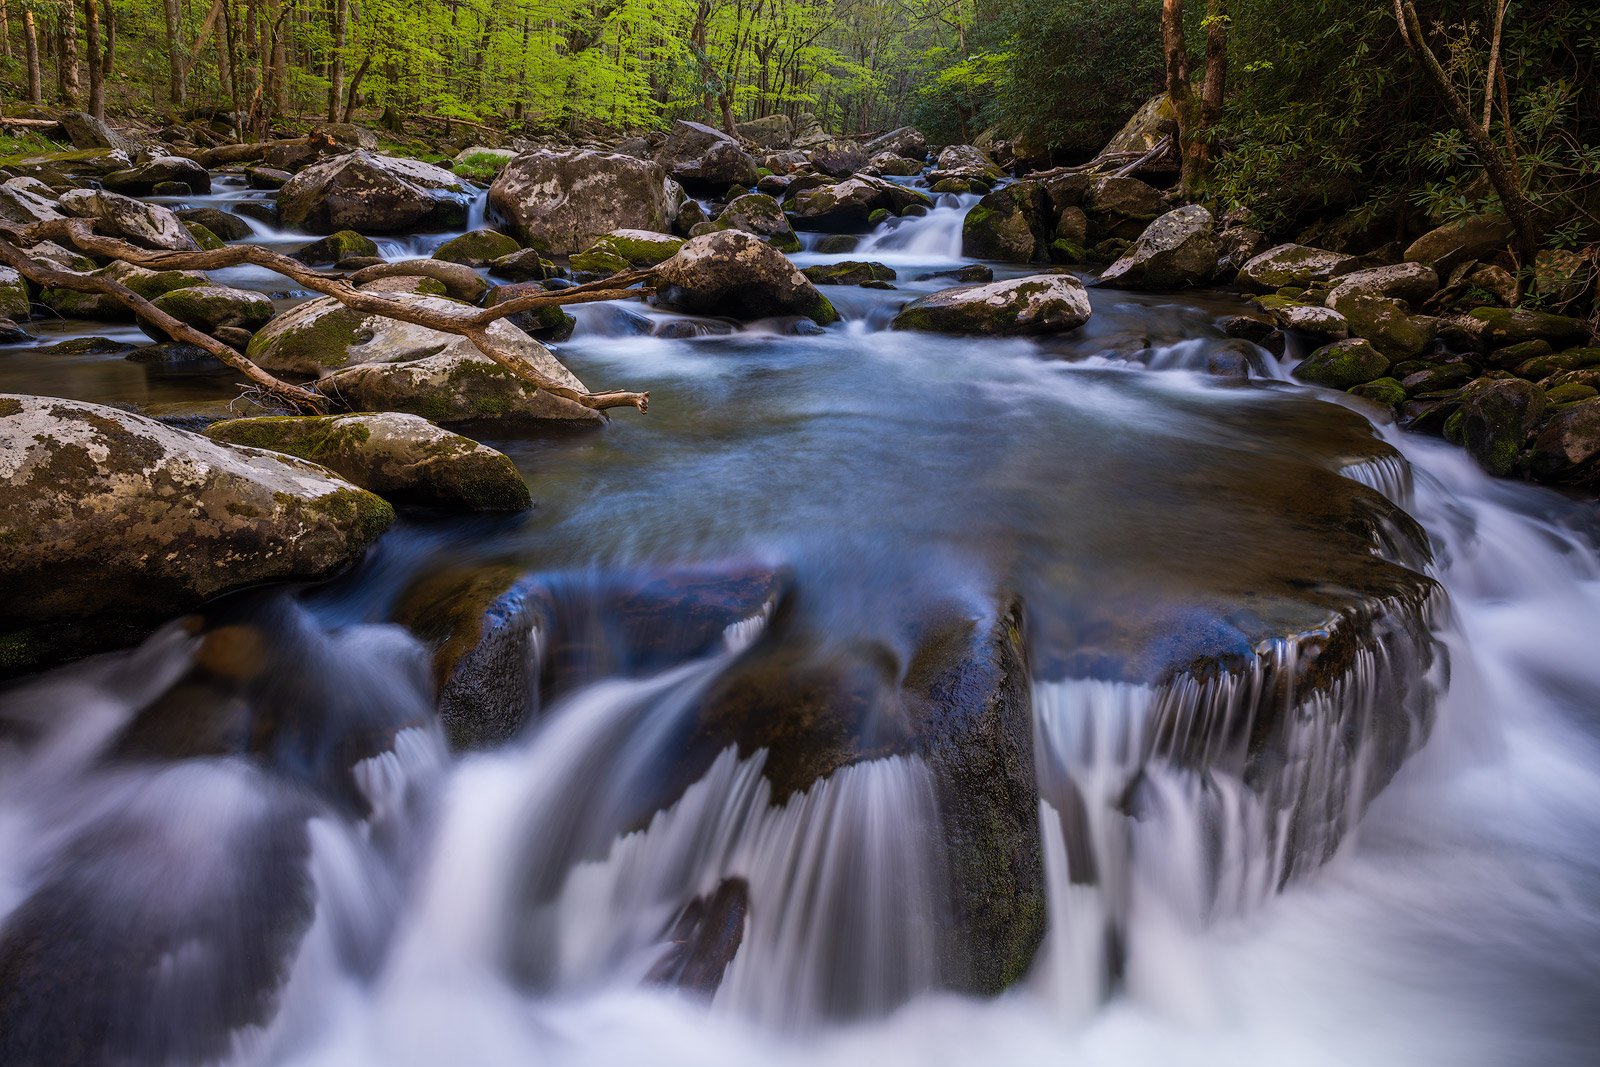 Early morning, late afternoon and on overcast days are best for photographing the many drops, cascades and waterfalls along the...